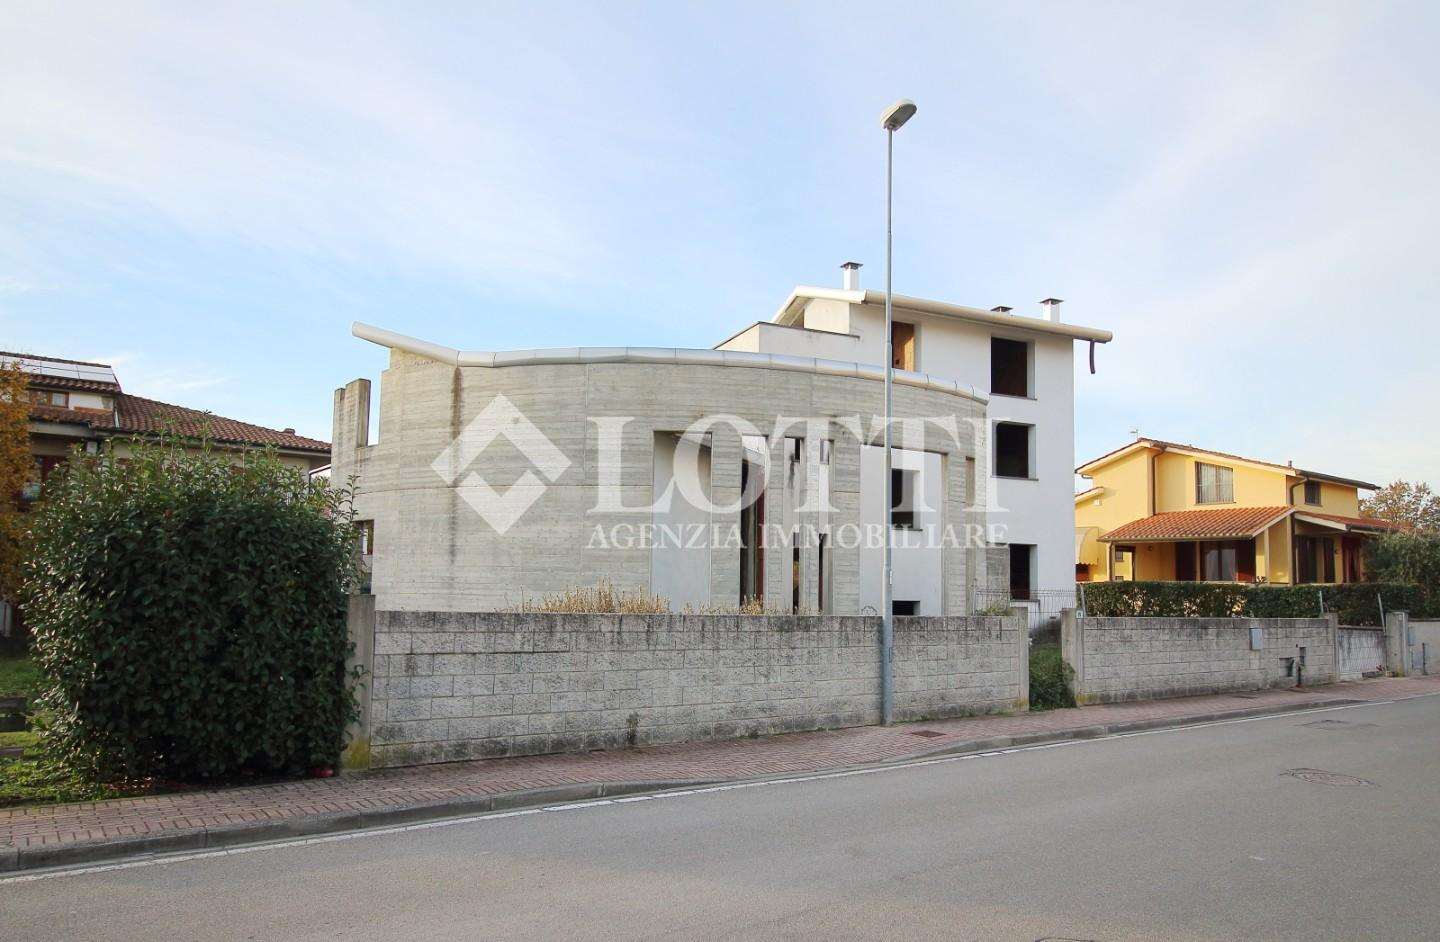 Single-family house for sale in Quattro Strade, Bientina (PI)